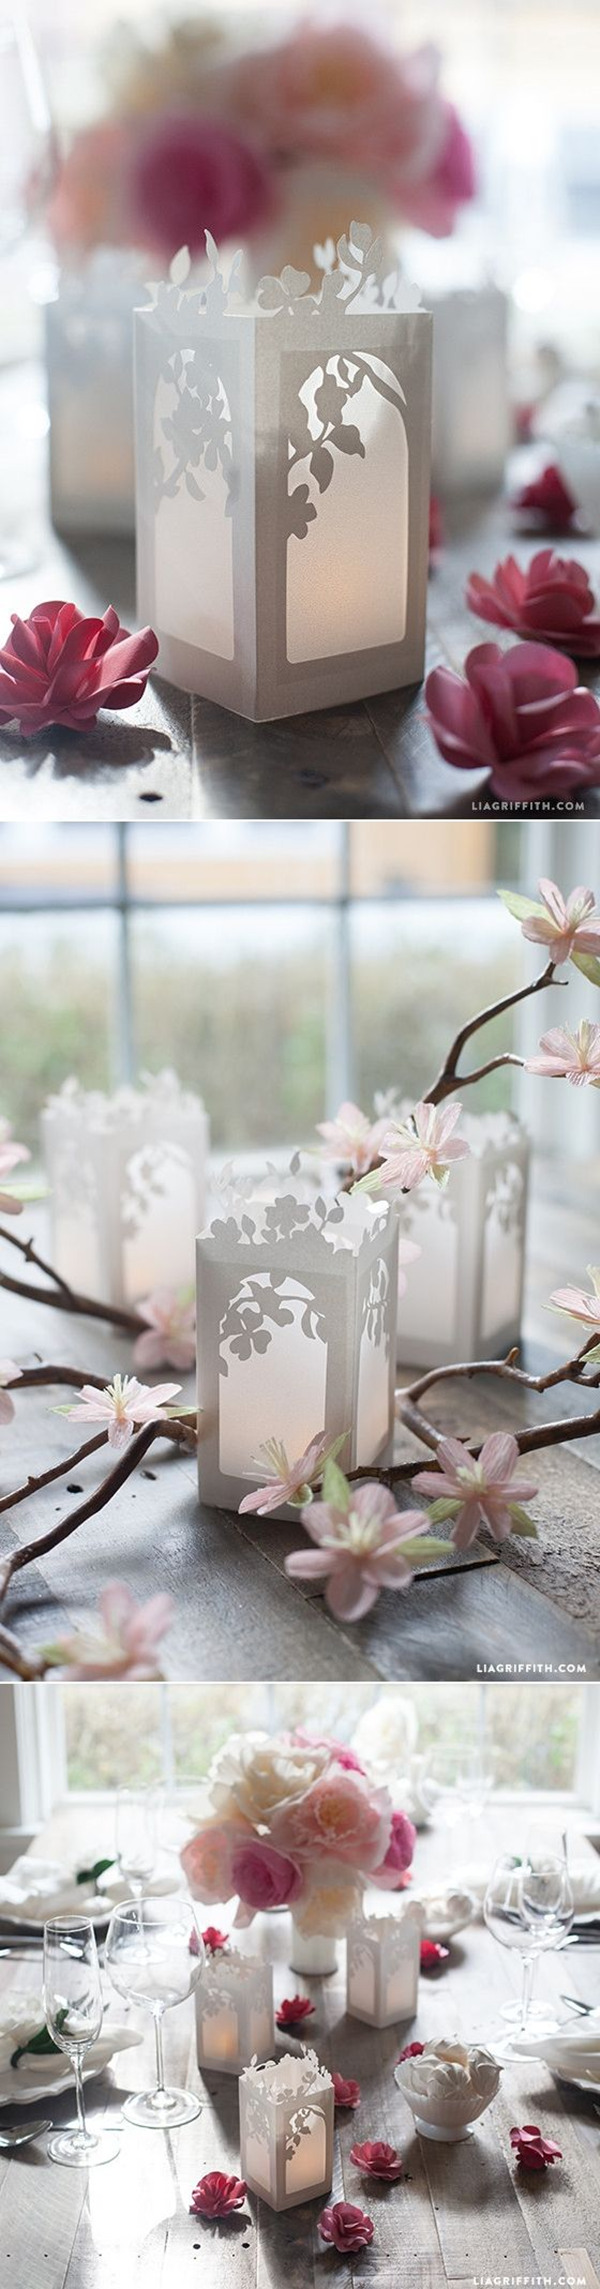 gorgeous DIY wedding centerpieces of paper lanterns